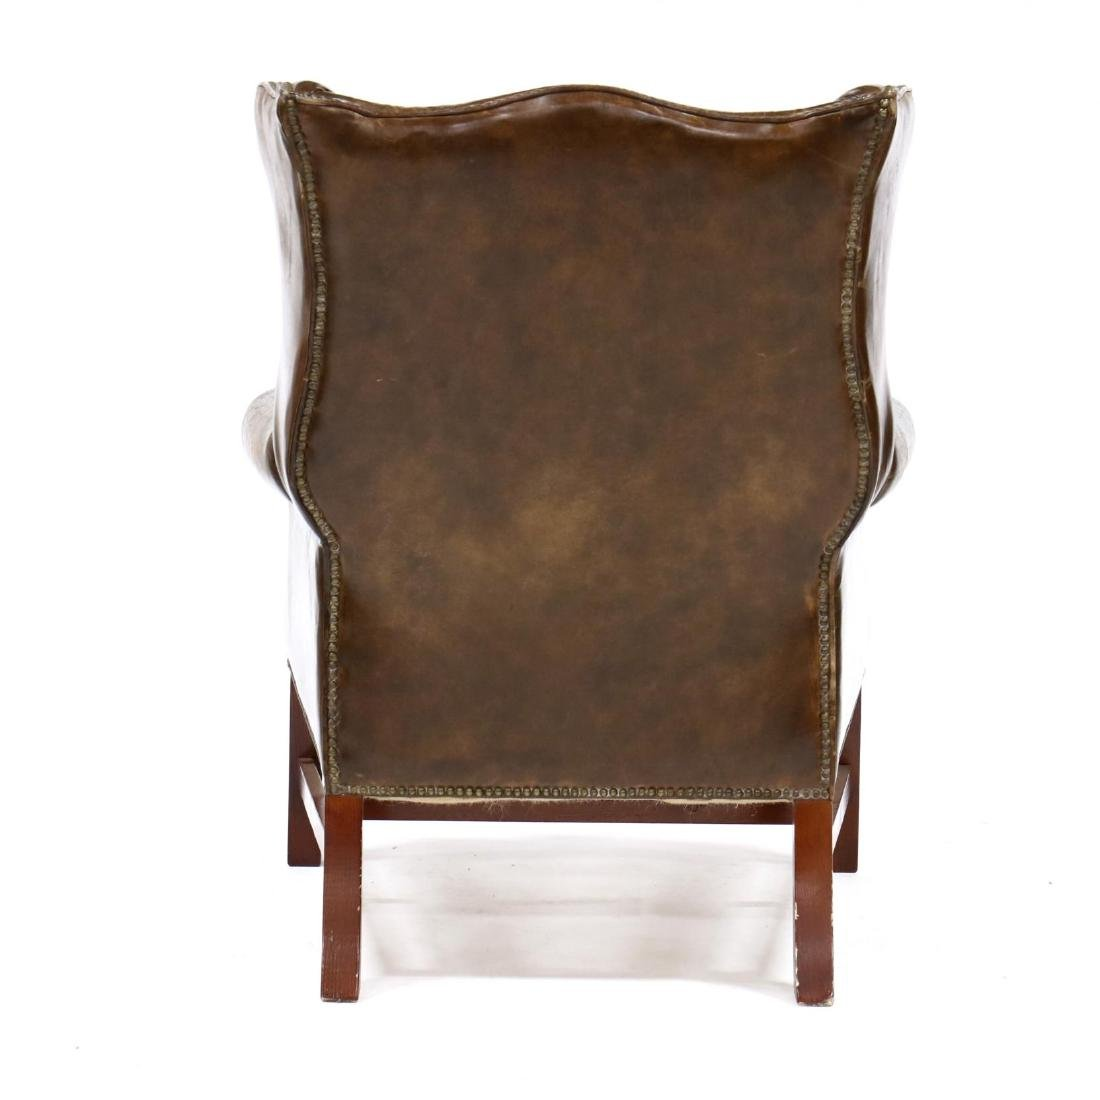 Chippendale Style Distressed Leather Wing Back Chair - 3